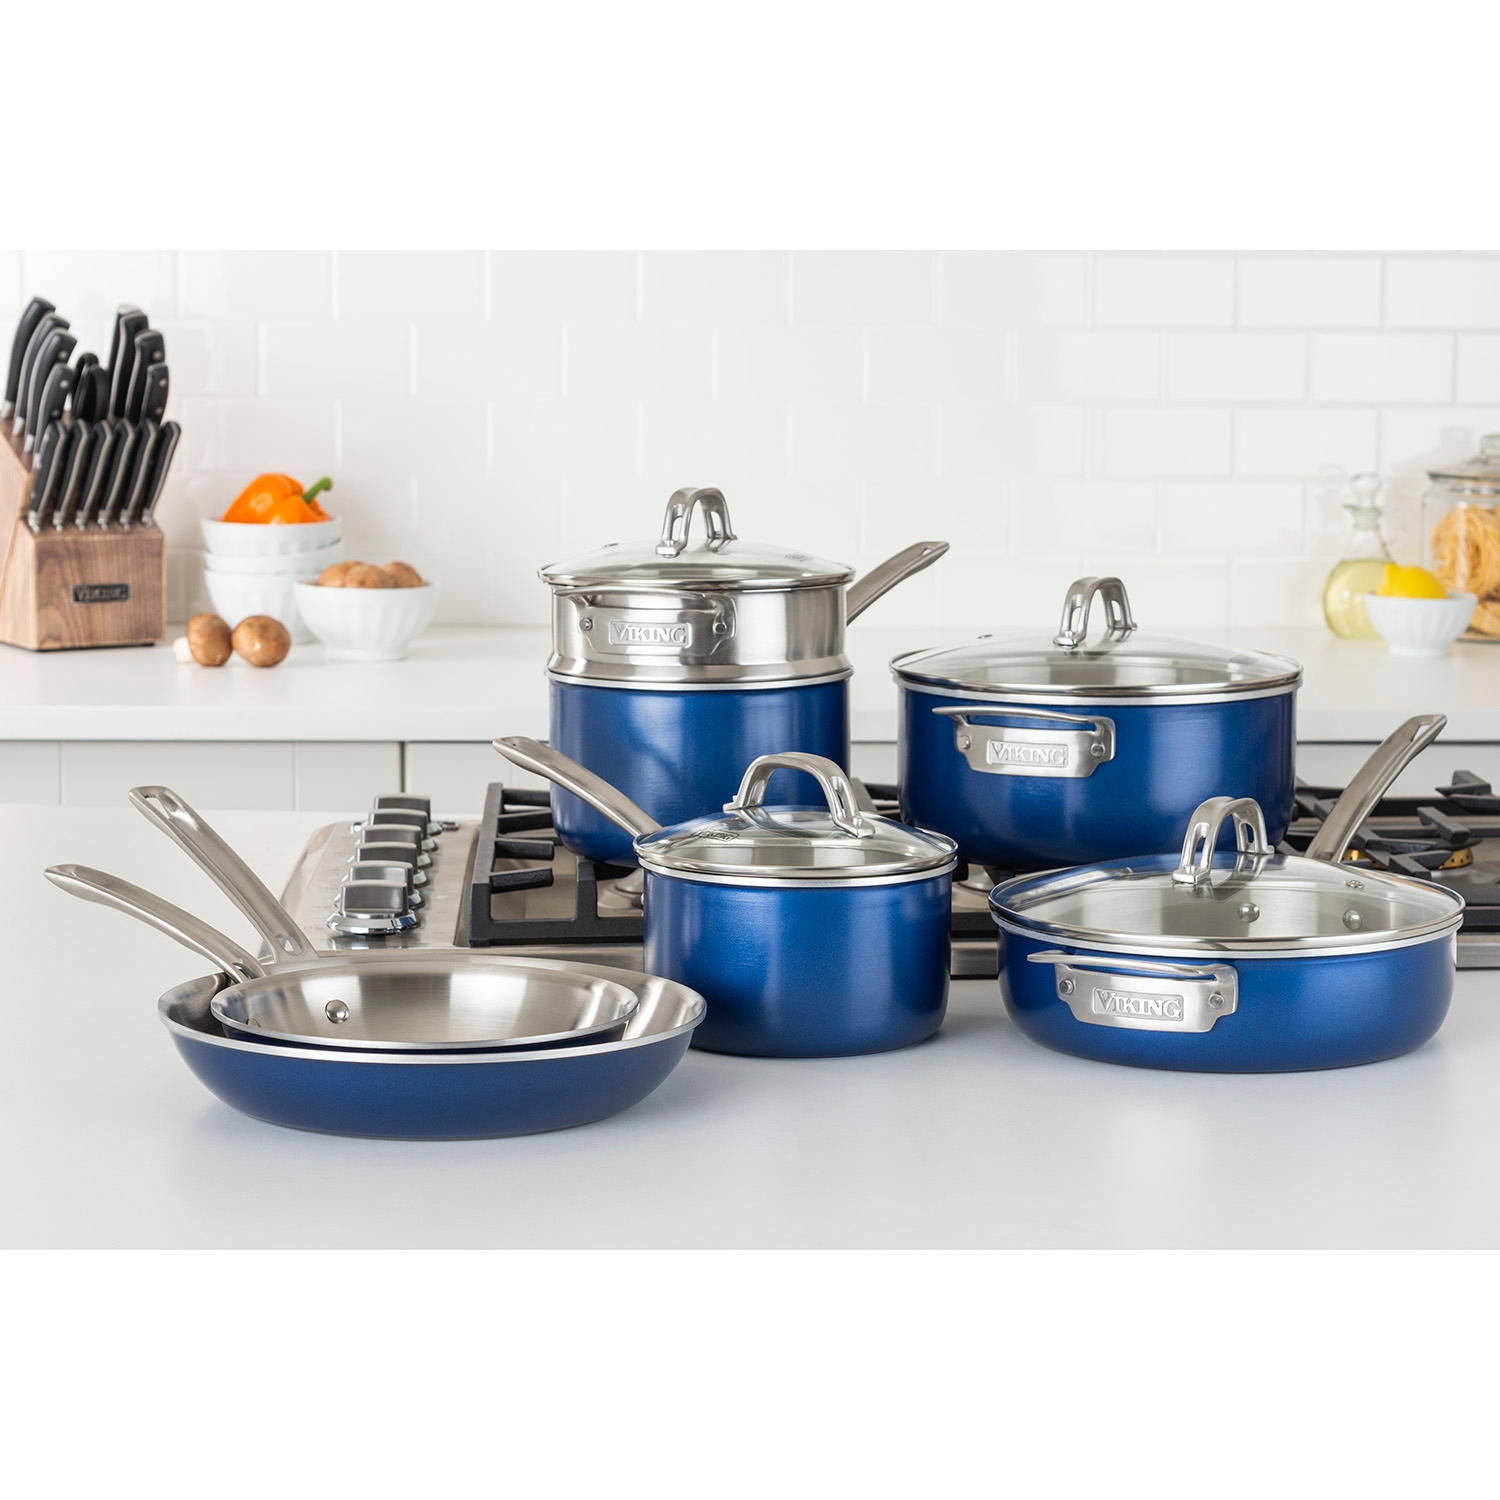 Viking 2-Ply Aluminum and Stainless Steel 11-Piece Cookware Set